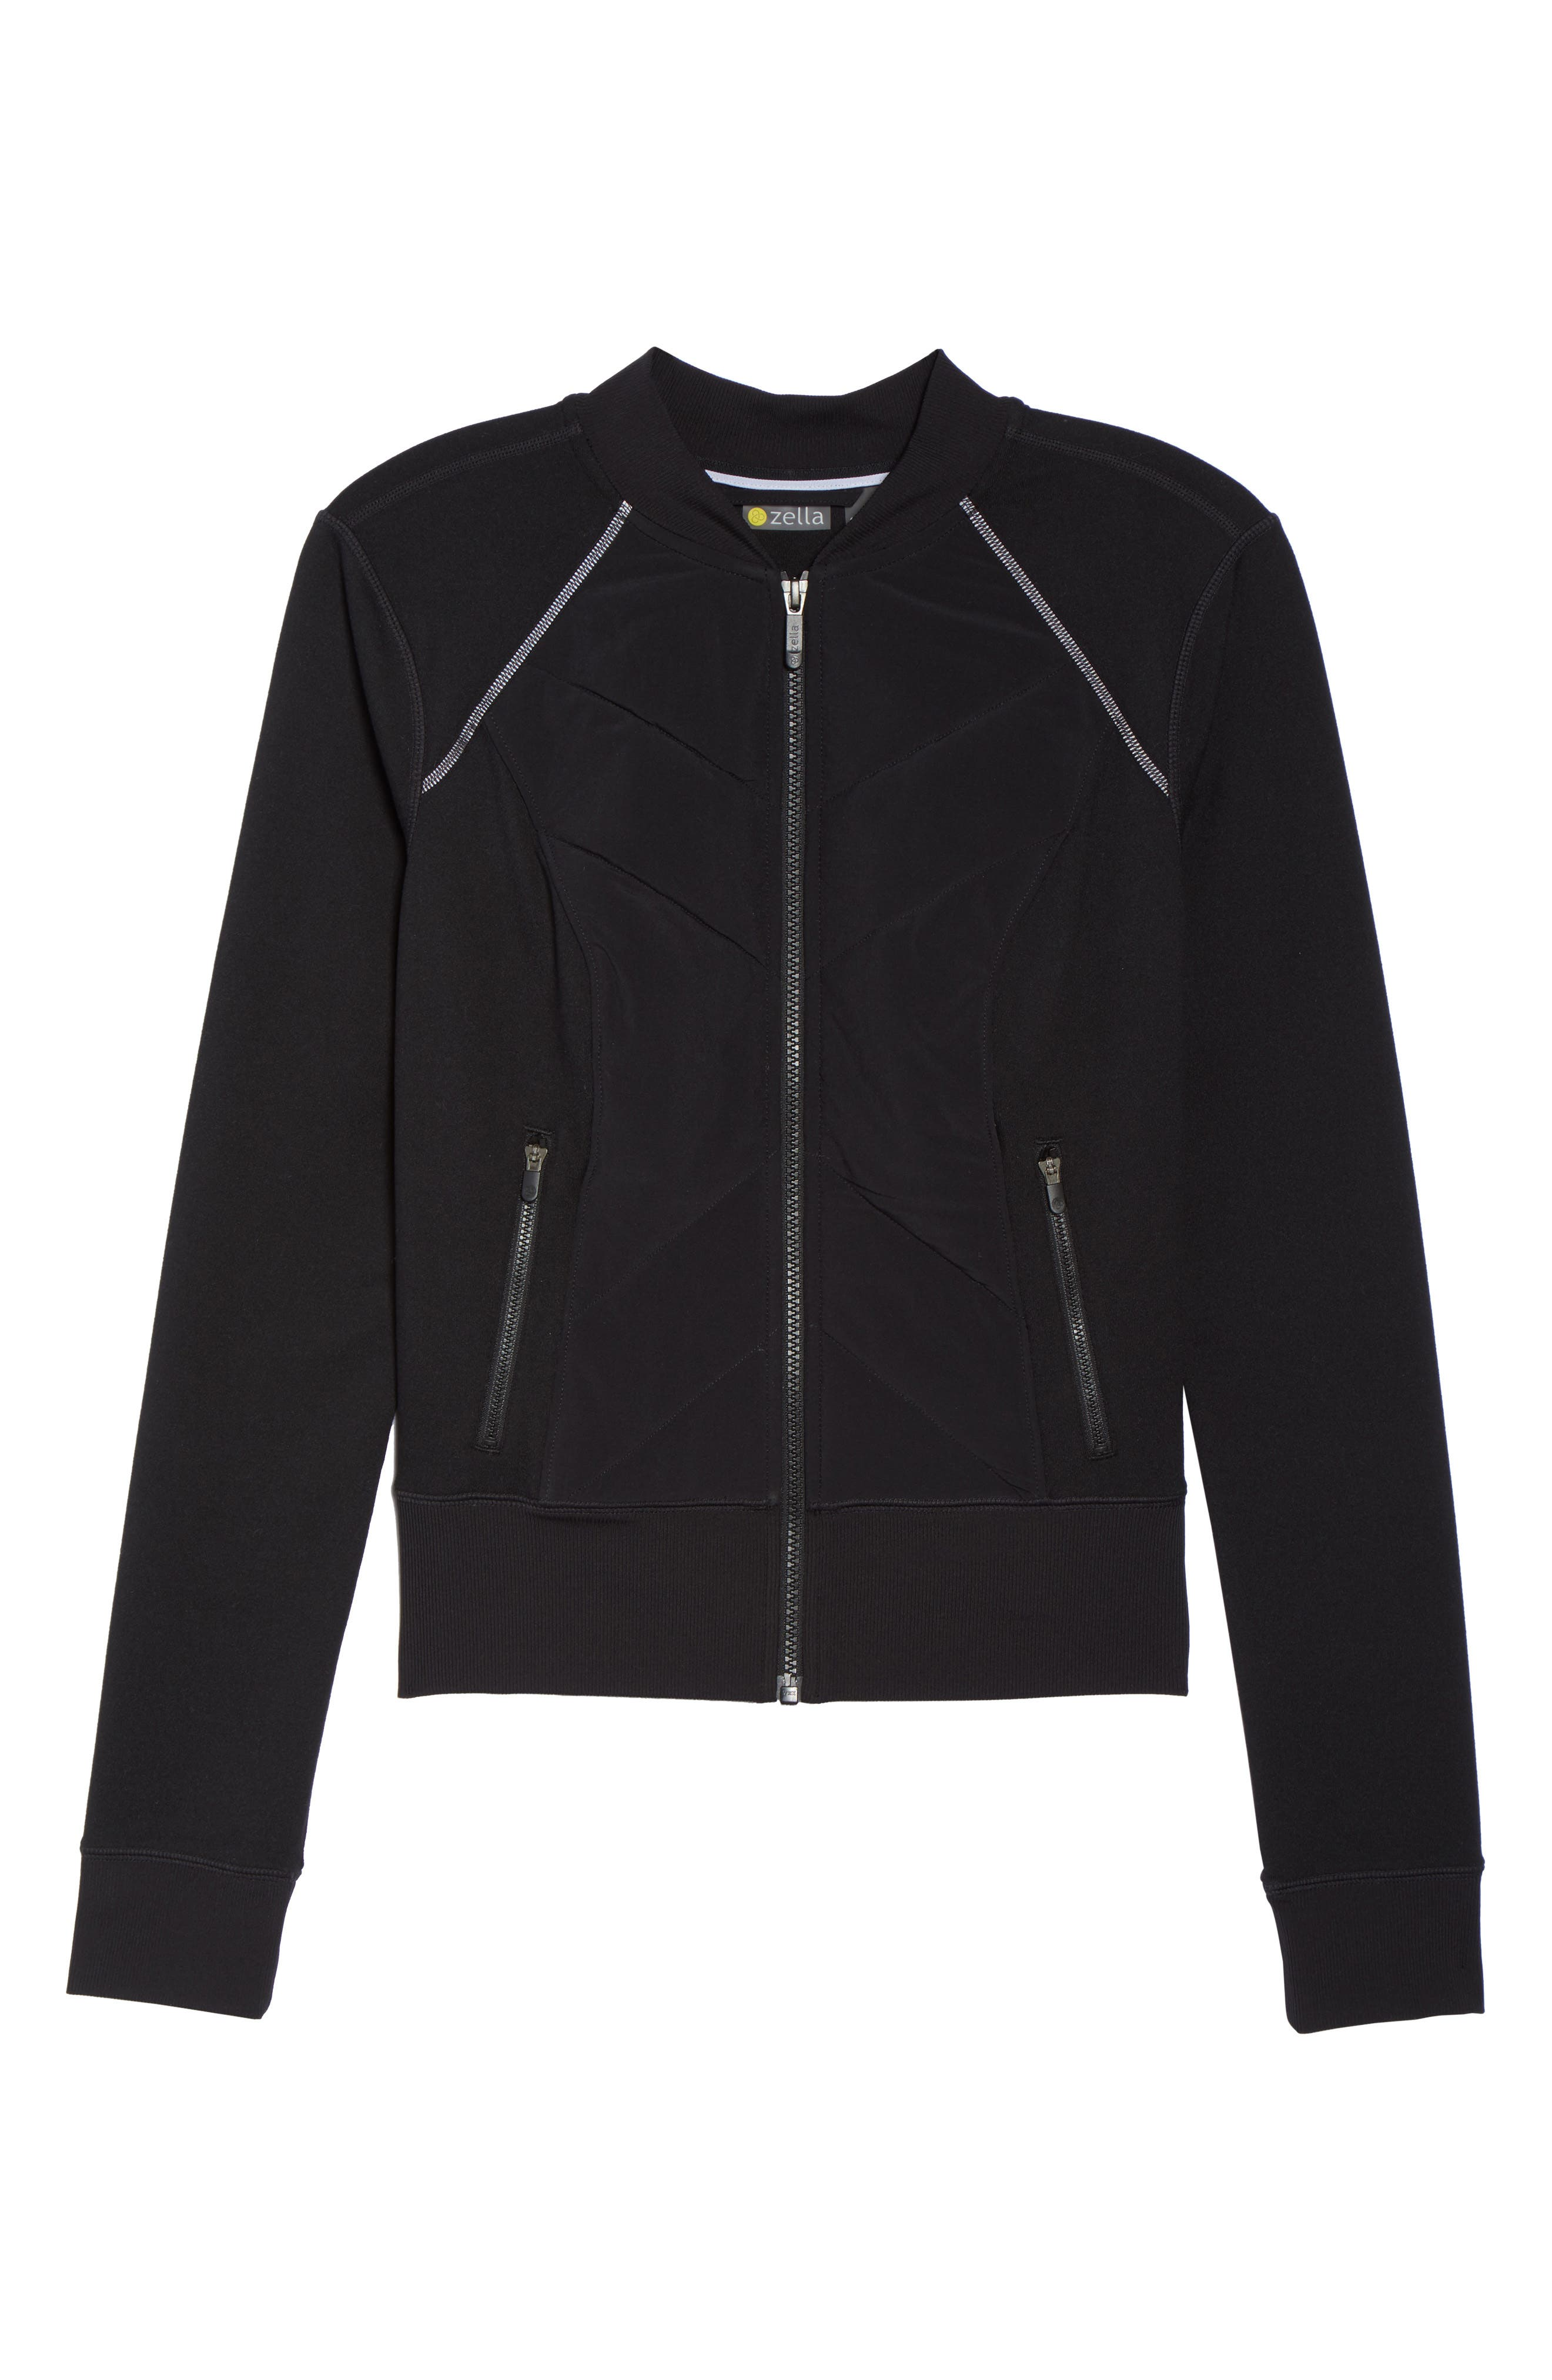 Wear It Out Bomber Jacket,                             Alternate thumbnail 6, color,                             001